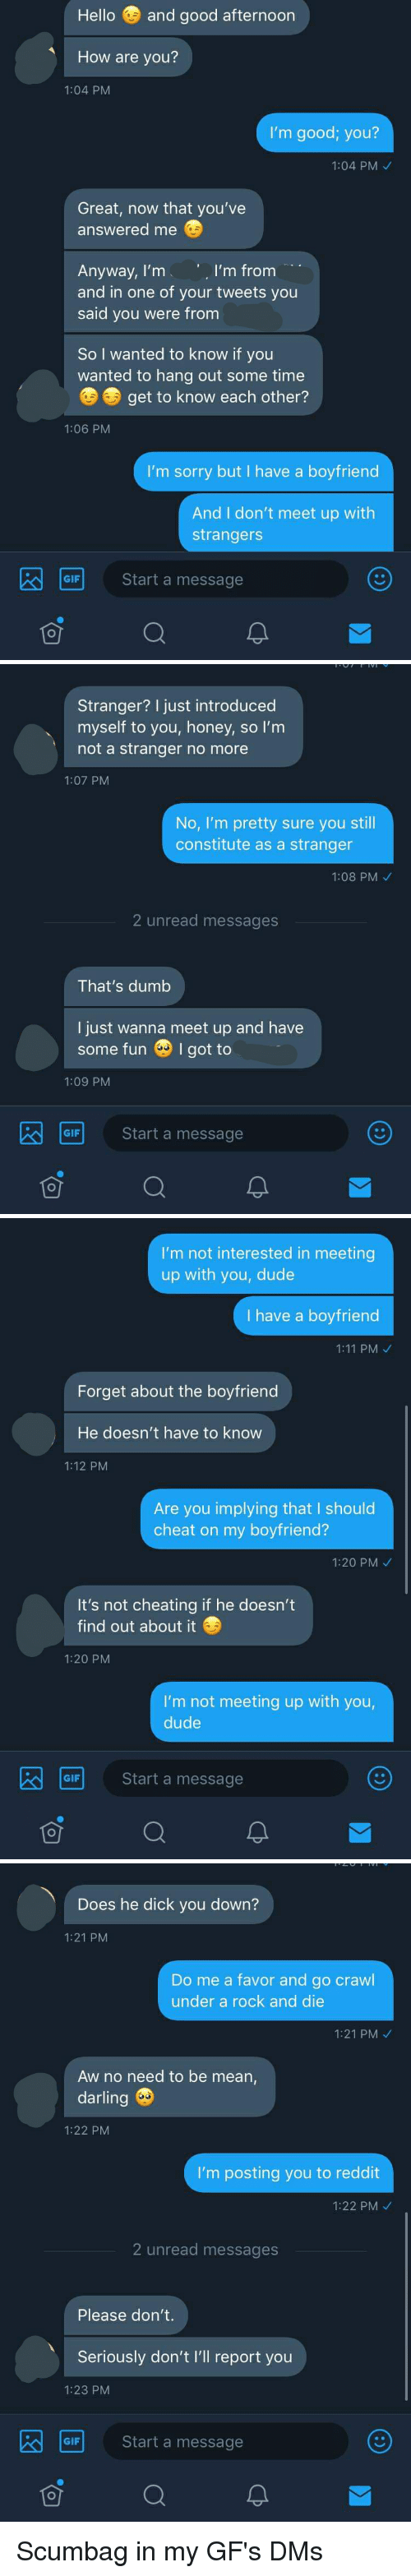 Cheating, Dude, and Dumb: Hello and good afternoon  How are you?  1:04 PM  I'm good; you?  1:04 PM  Great, now that you've  answered me  I'm from  Anyway, I'm  and in one of your tweets you  said you were from  So I wanted to know if you  wanted to hang out some time  get to know each other?  1:06 PM  I'm sorry but I have a boyfriend  And I don't meet up with  strangers  GIF  Start a message   Stranger? I just introduced  myself to you, honey, so I'm  not a stranger no more  1:07 PM  No, I'm pretty sure you still  constitute as a stranger  1:08 PM  2 unread messages  That's dumb  I just wanna meet up and have  some fun I got to  1:09 PM  GIF  Start a message   I'm not interested in meeting  up with you, dude  I have a boyfriend  1:11 PM  Forget about the boyfriend  He doesn't have to know  1:12 PM  Are you implying that I should  cheat on my boyfriend?  1:20 PM  It's not cheating if he doesn't  find out about it  1:20 PM  I'm not meeting up with you,  dude  Start a message  GIF   Does he dick you down?  1:21 PM  Do me a favor and go crawl  under a rock and die  1:21 PM  Aw no need to be mean,  darling  1:22 PM  I'm posting you to reddit  1:22 PM  2 unread messages  Please don't.  Seriously don't I'll report you  1:23 PM  Start a message  GIF  可 Scumbag in my GF's DMs